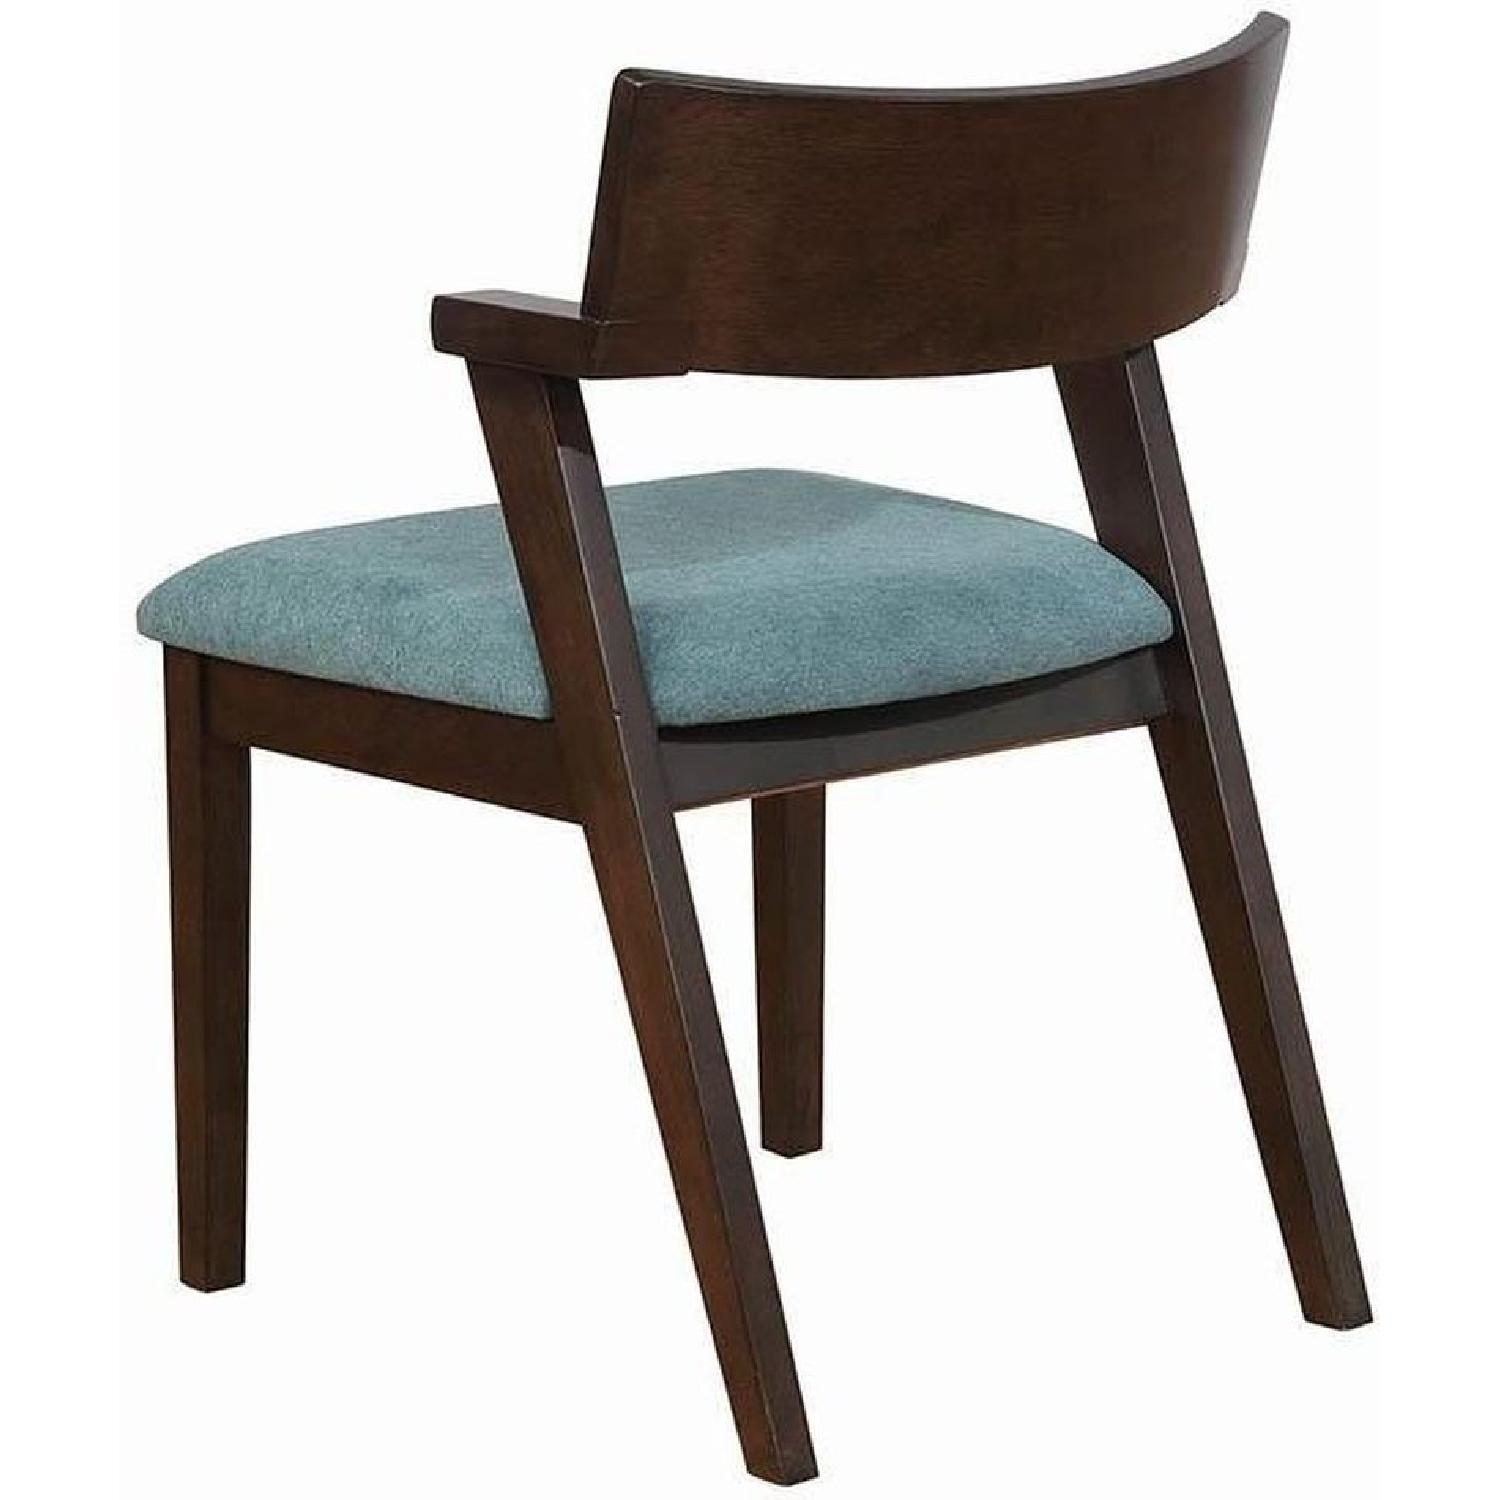 Mid Century Style Dining Chair w/ Teal Cushioned Seat - image-5